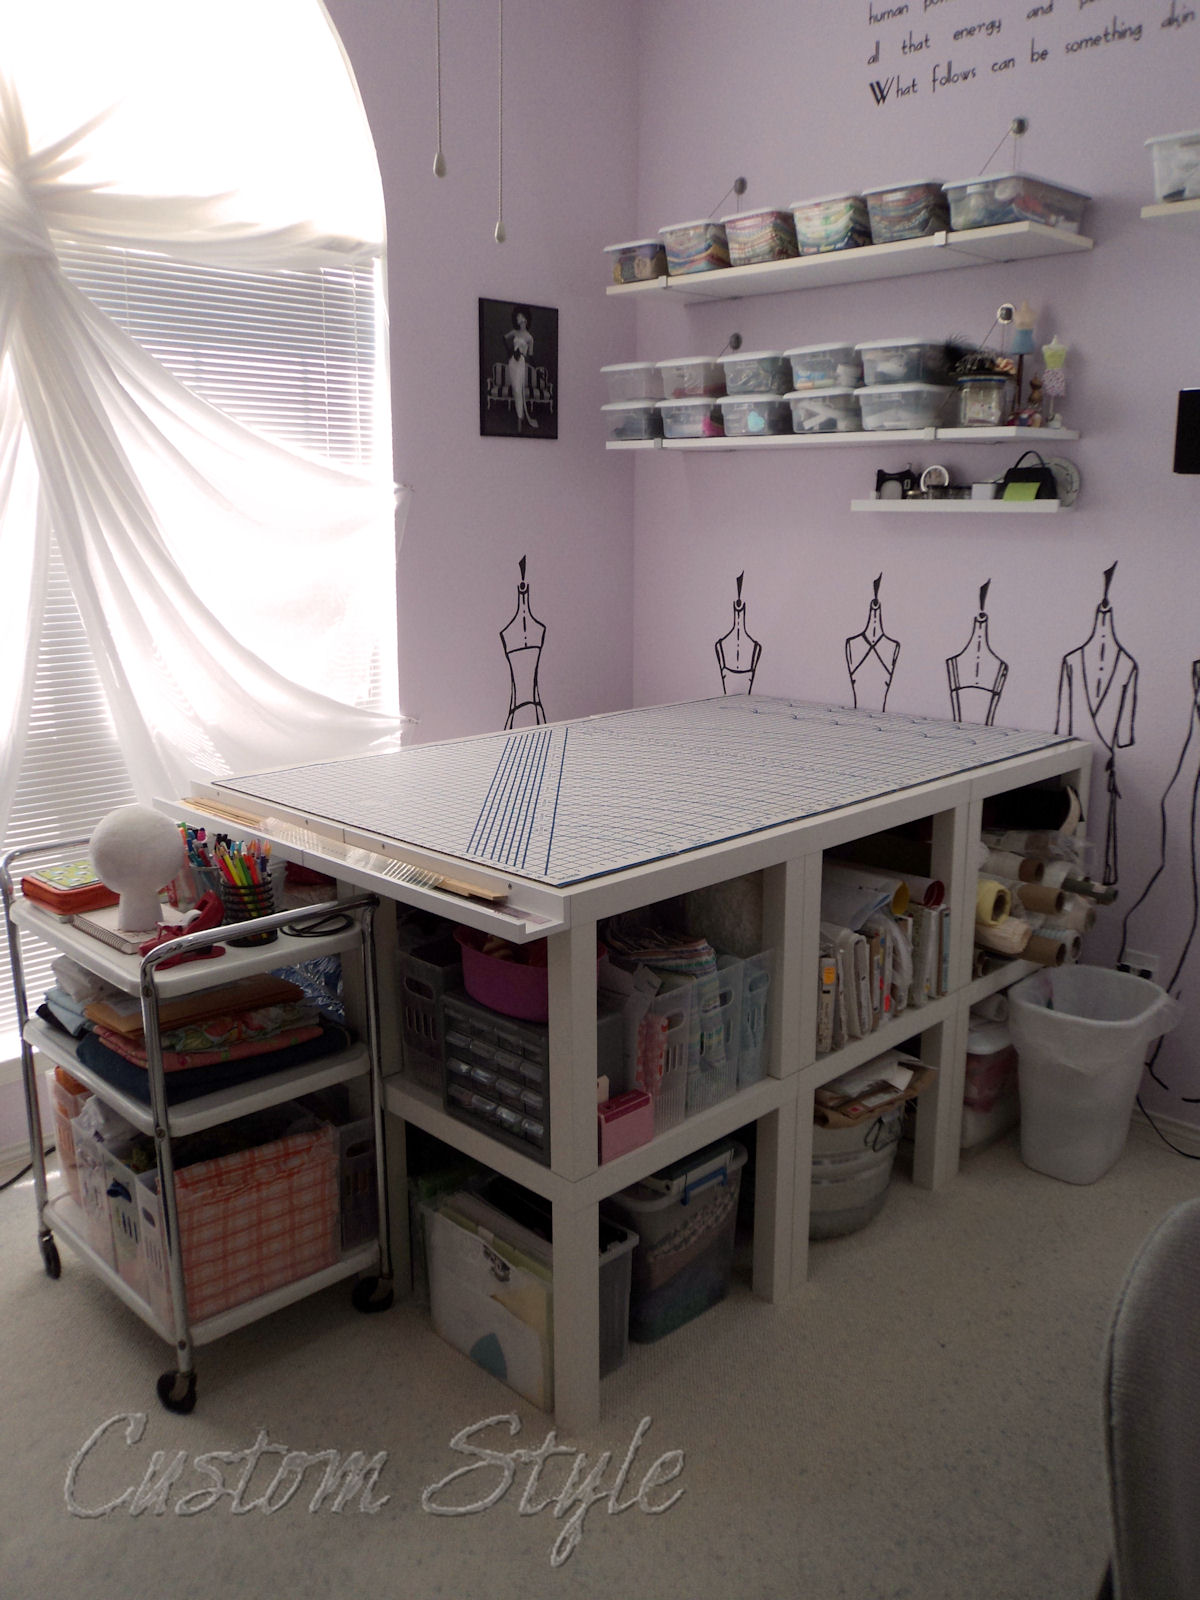 My sewing space the sequel custom style - Customiser table basse ikea ...